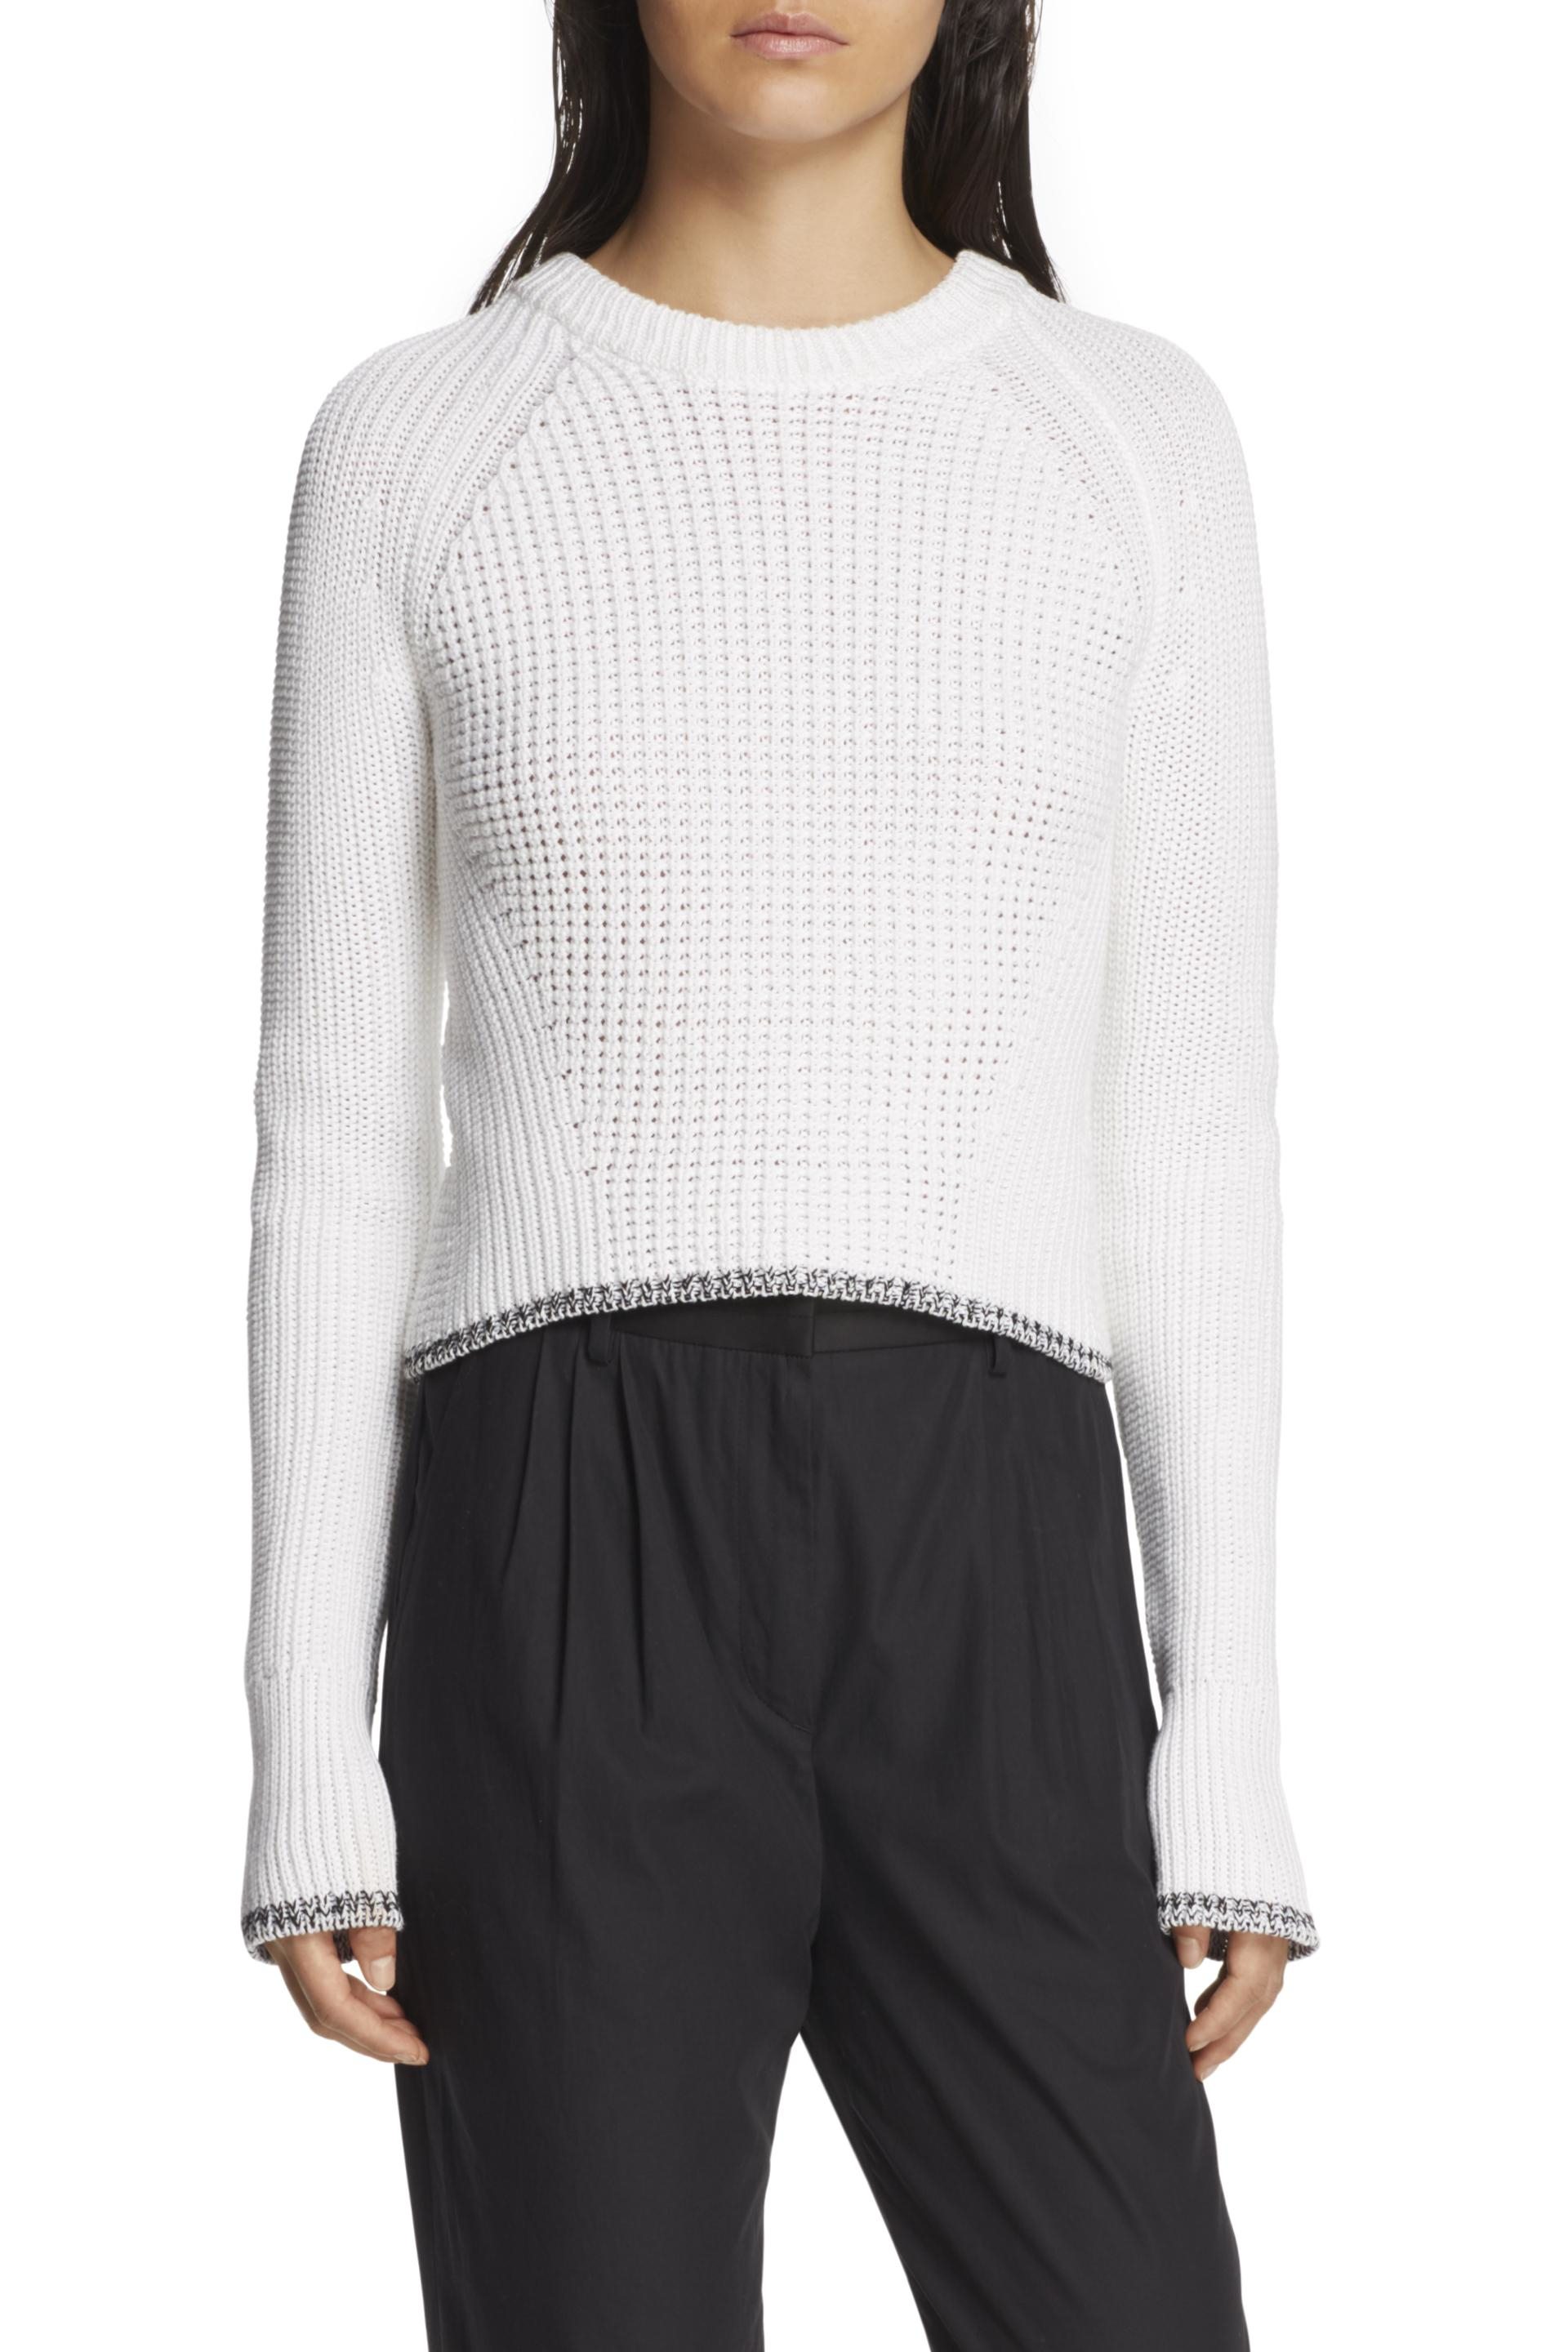 Rag & bone Beatrix Pullover in White | Lyst